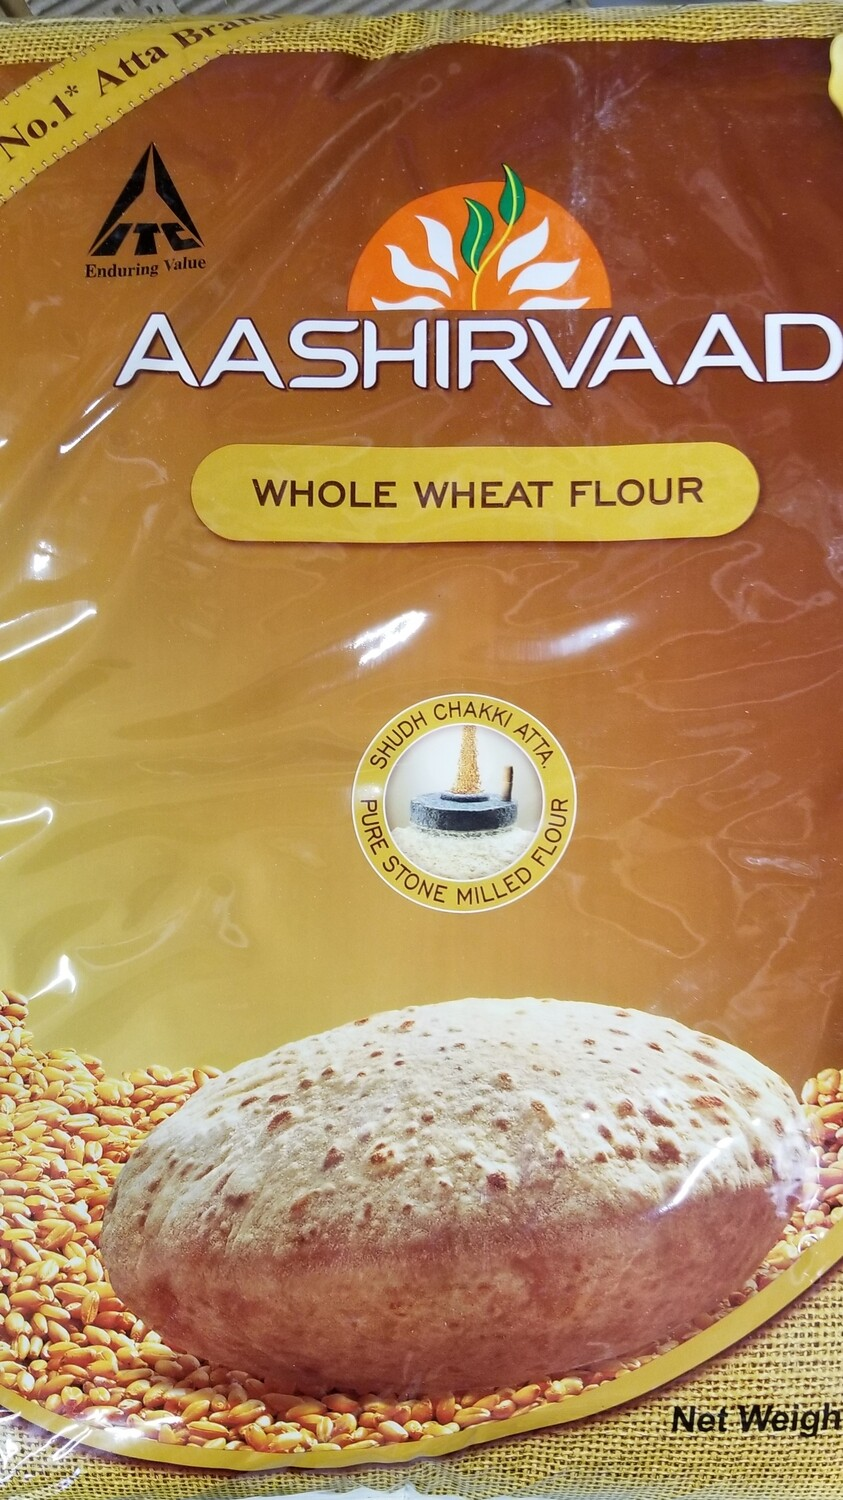 Aasirwad Whole Wheat 20lb